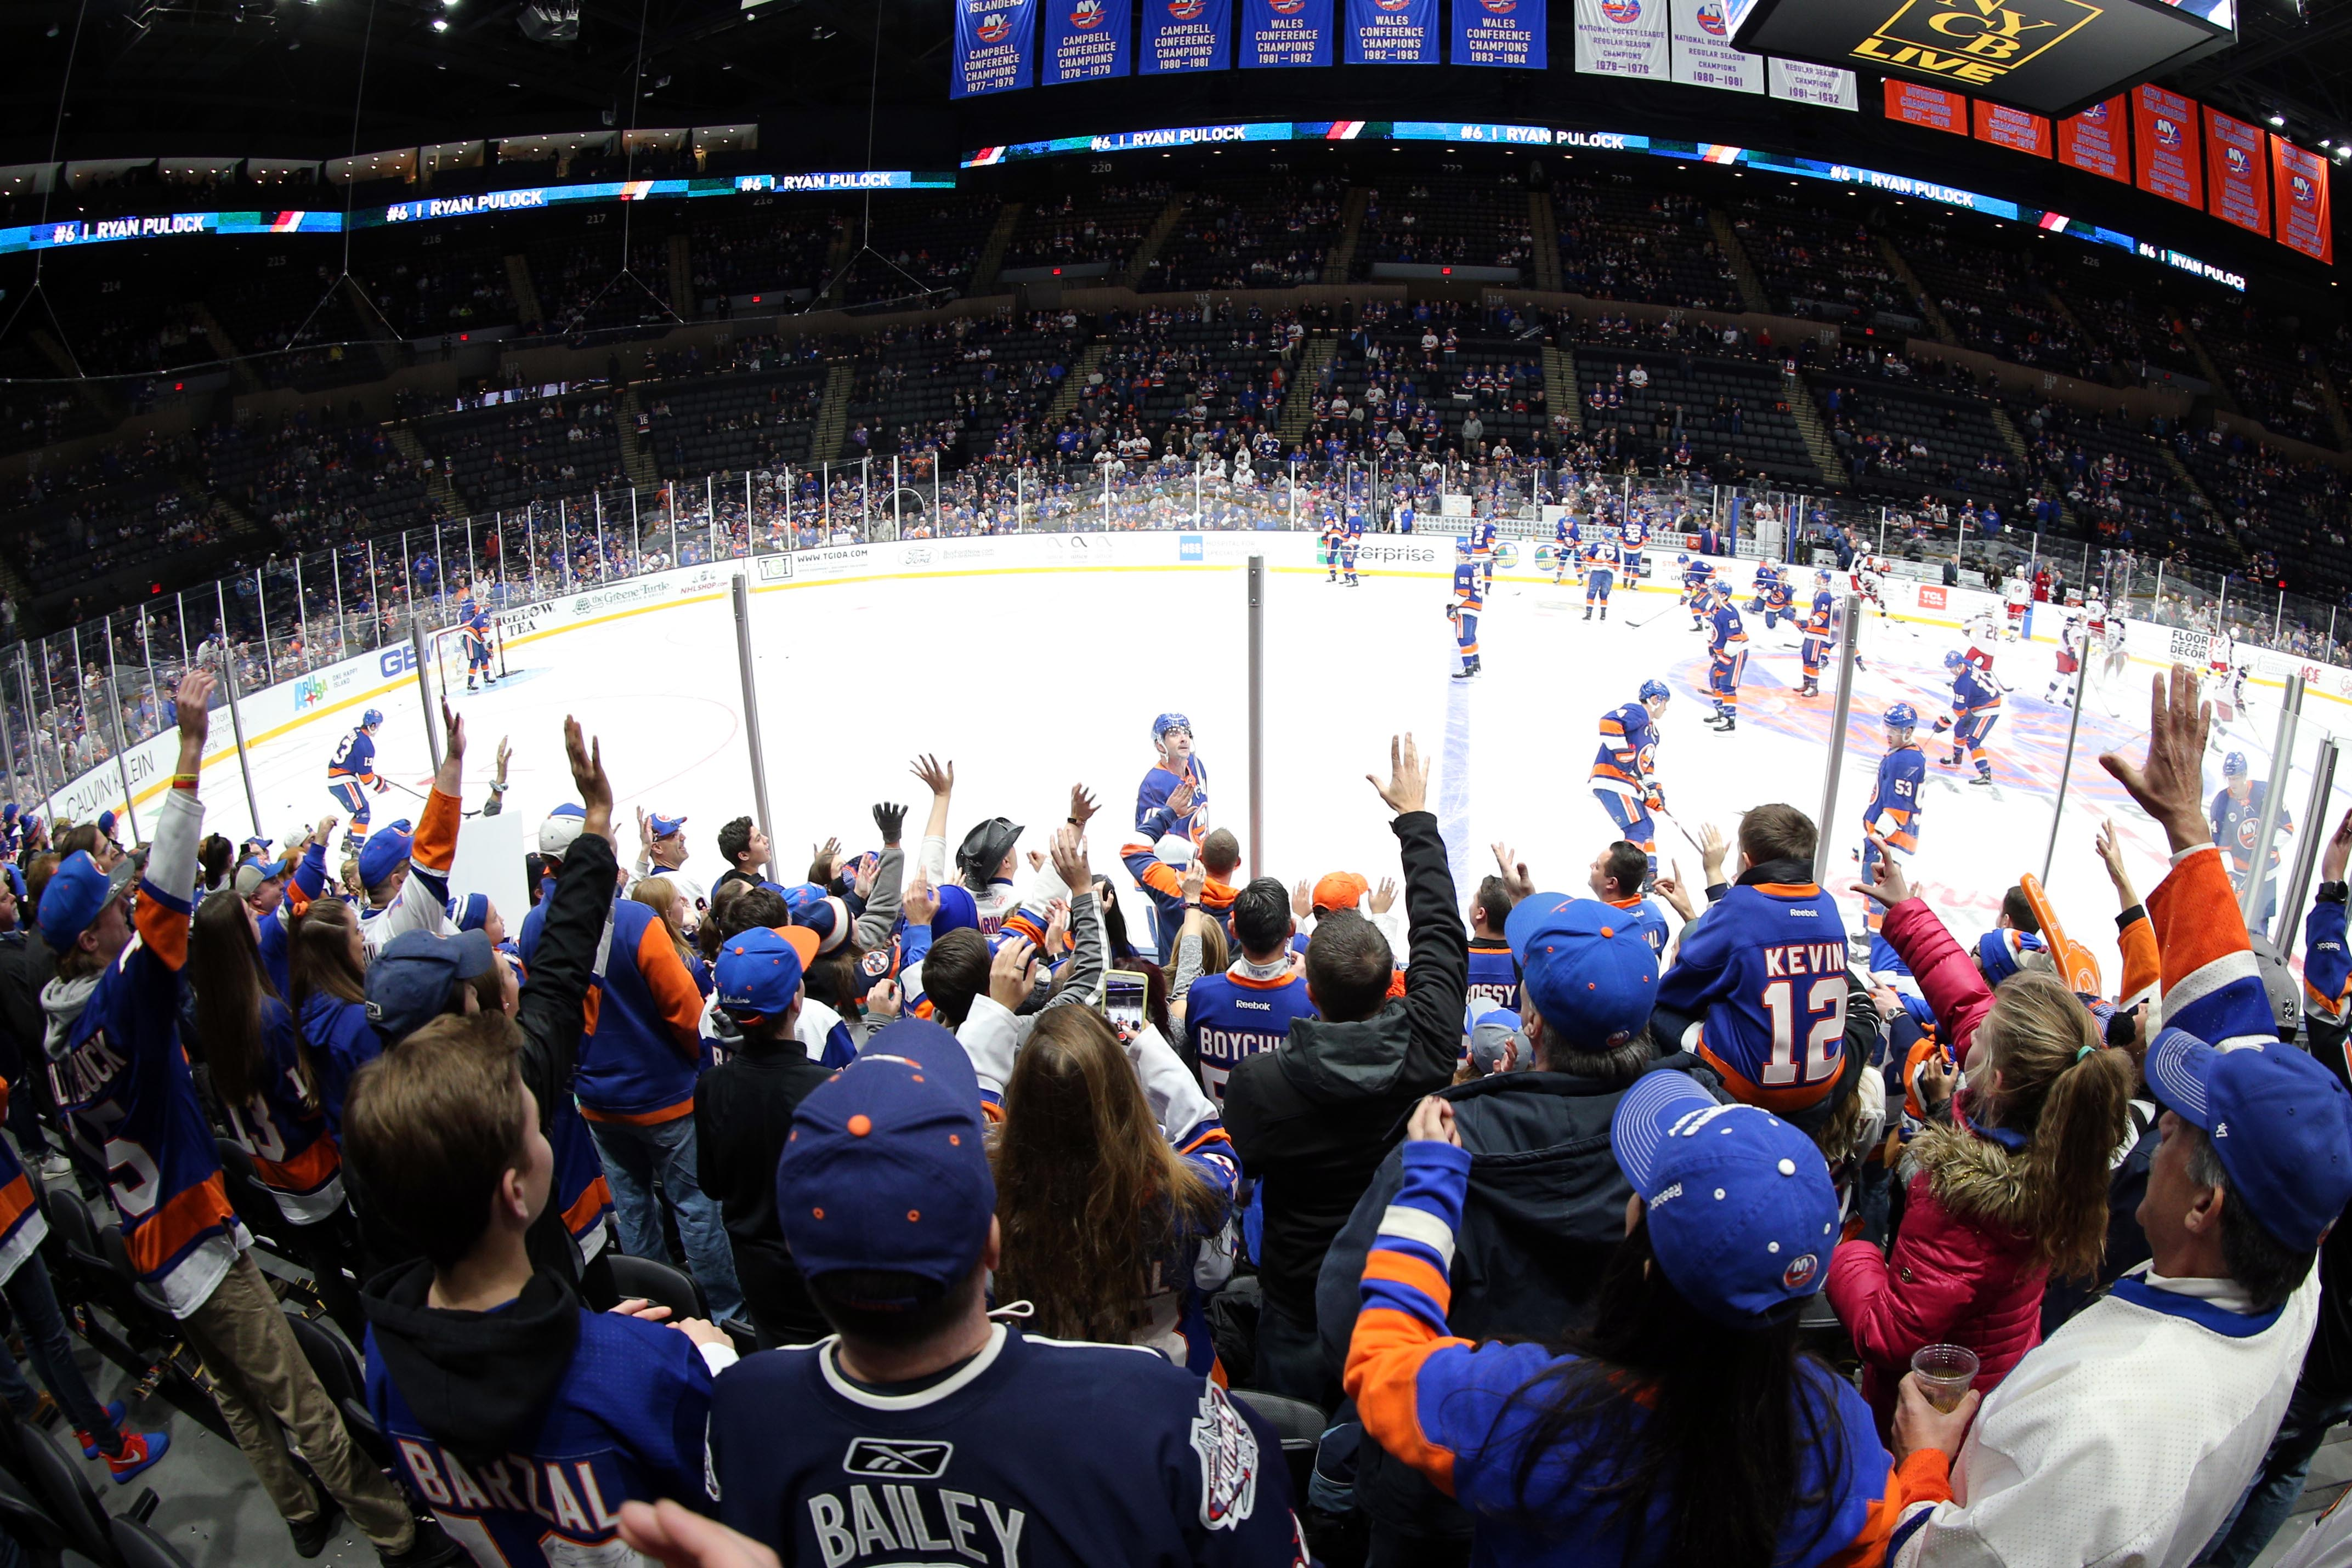 Dec 1, 2018; Uniondale, NY, USA; New York Islanders right wing Cal Clutterbuck (15) tosses a puck to fans during warmups before a game against the Columbus Blue Jackets at Nassau Veterans Memorial Coliseum. Mandatory Credit: Brad Penner-USA TODAY Sports